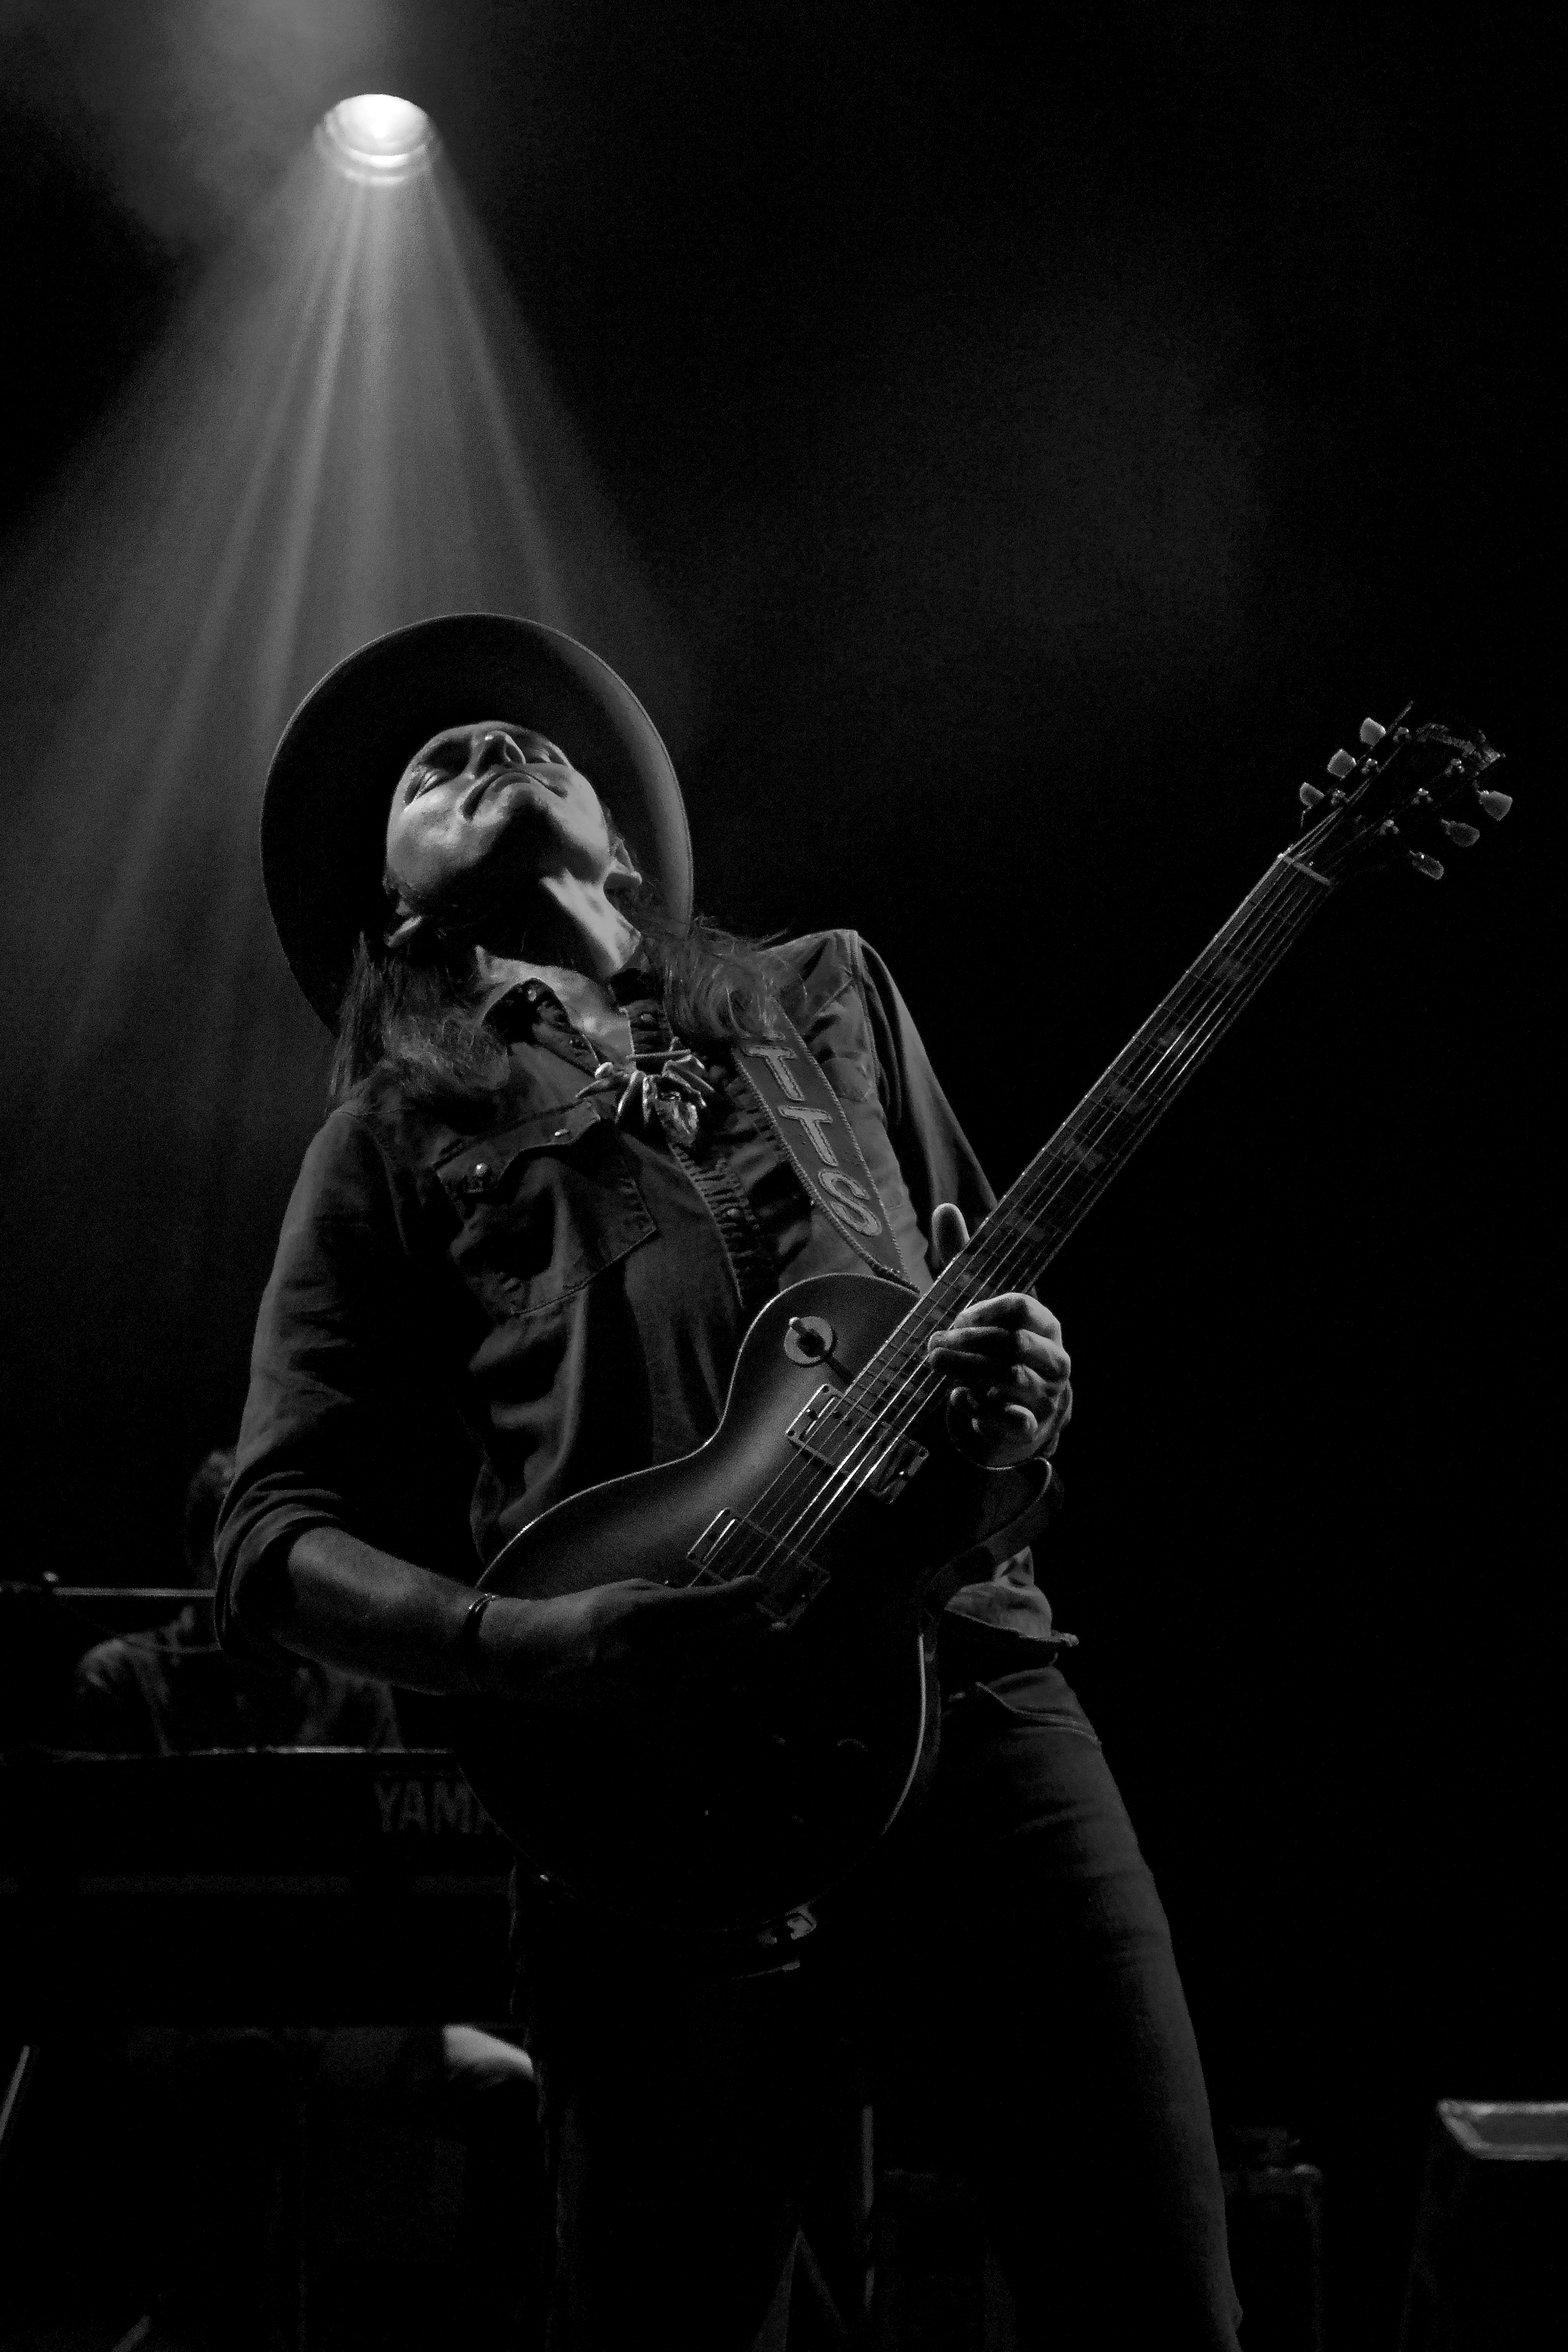 Duane Betts- Port Chester, NY July 2016